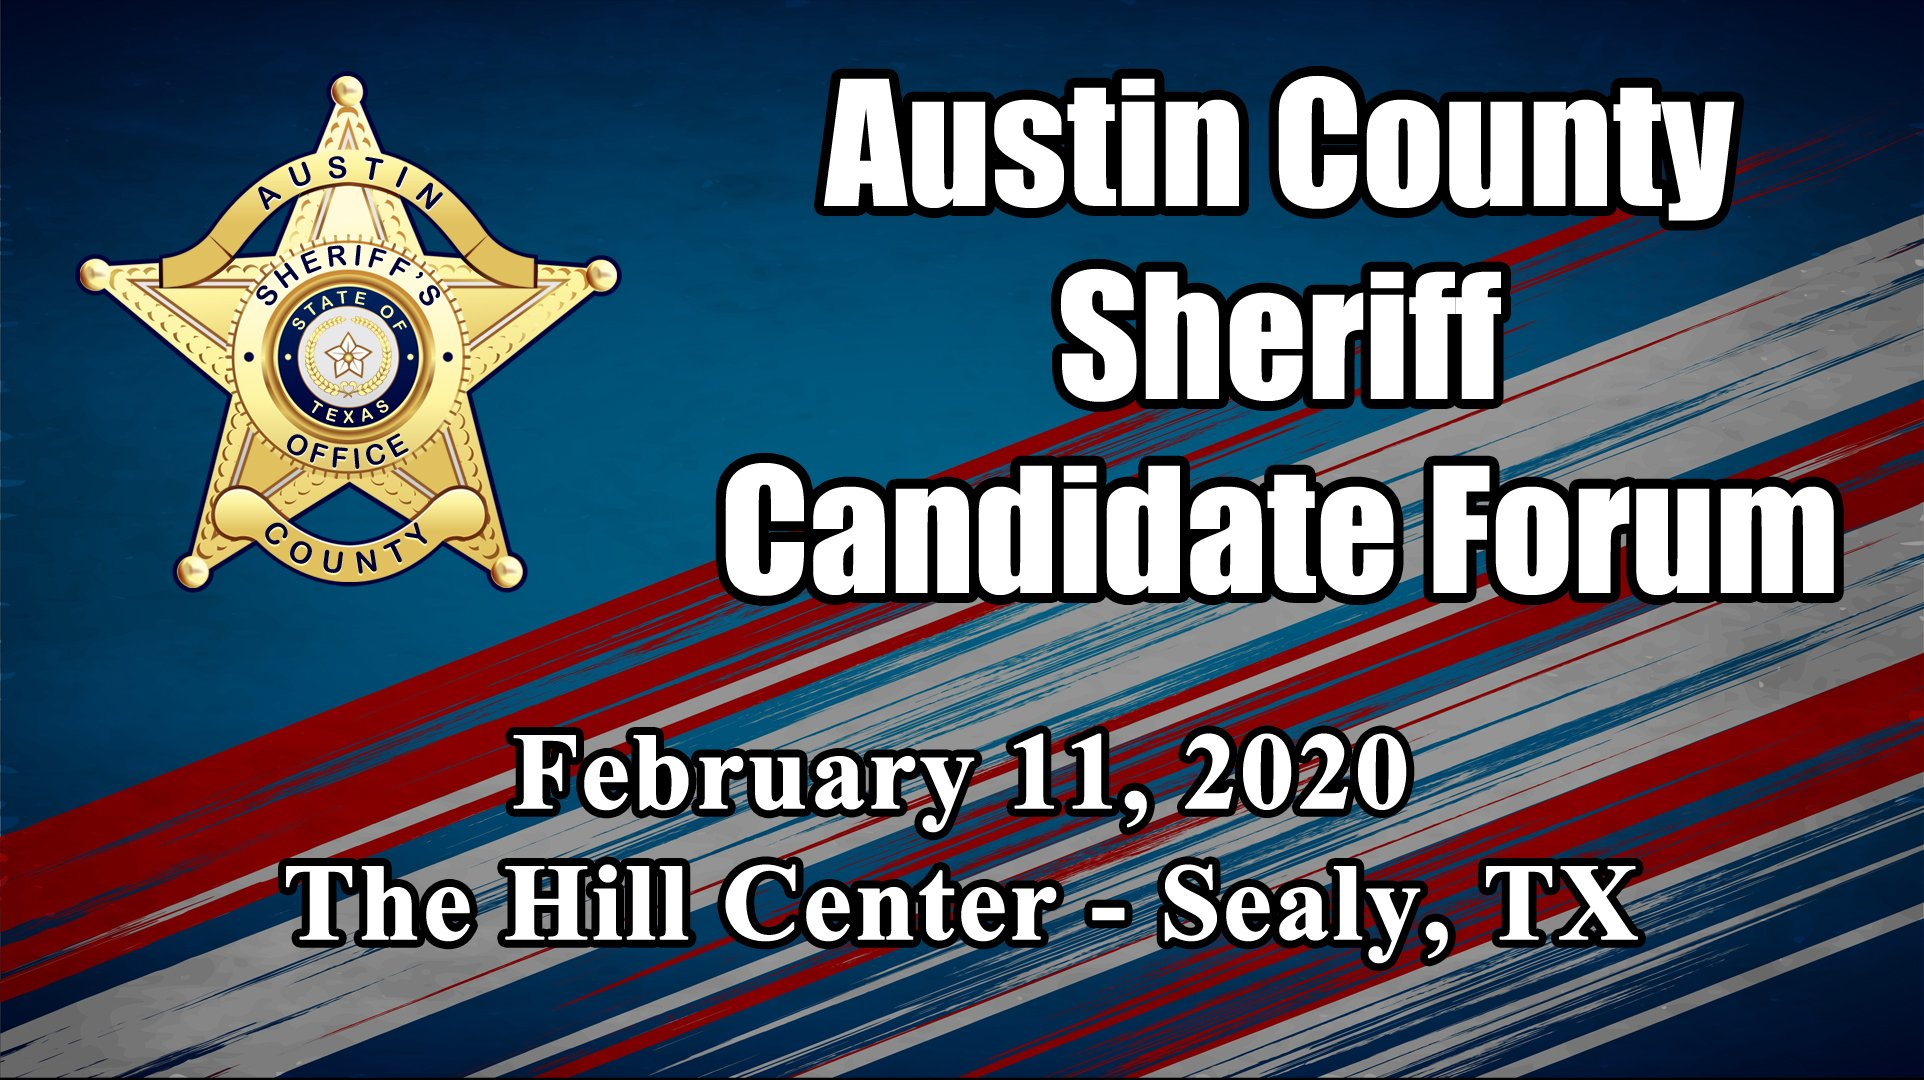 Austin County Sheriff Candidate Forum Held At Sealy Hill Center [VIDEO]